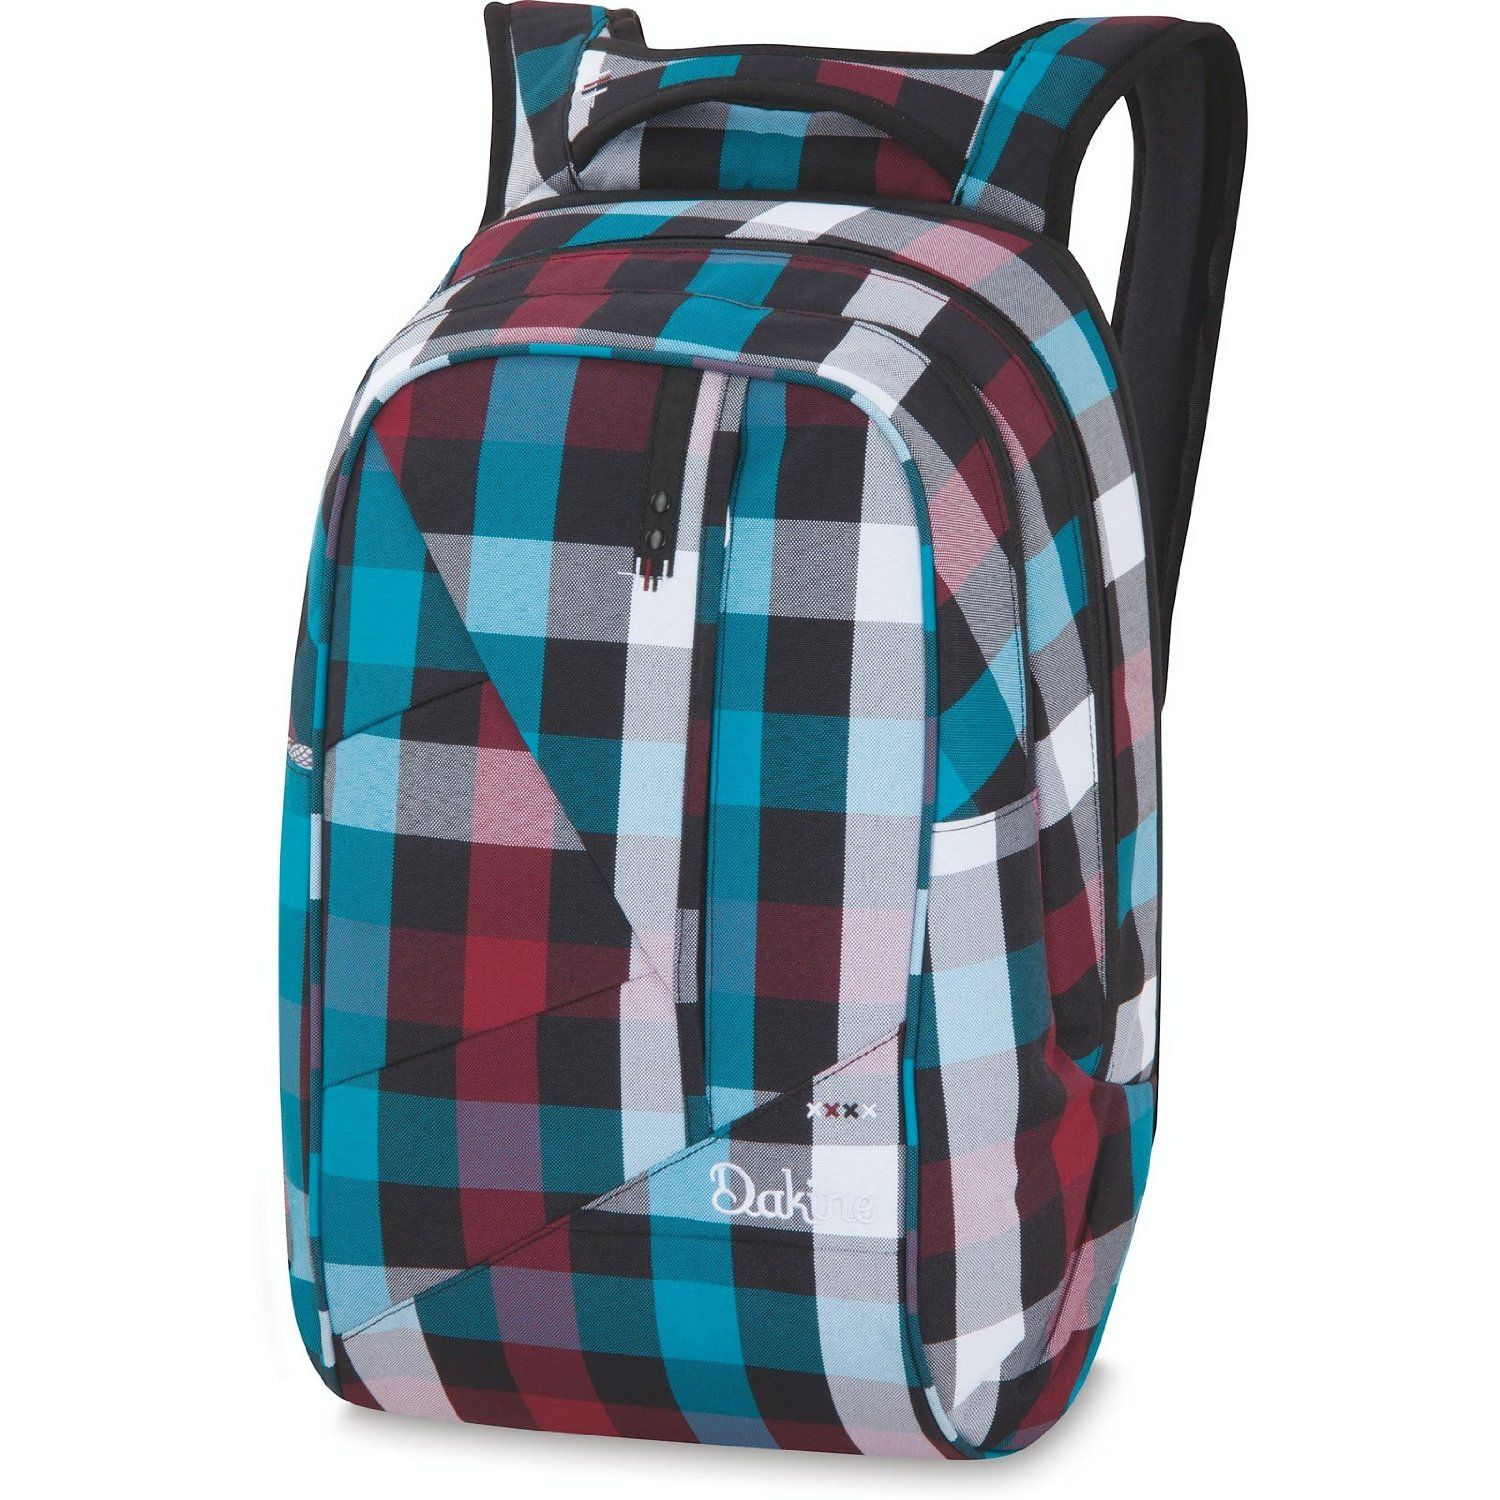 DaKine Women's Backpack for day hiking, street or school * ADDITIONAL DETAILS @ http://www.enetworkinghub.com/Trav/10205/osn